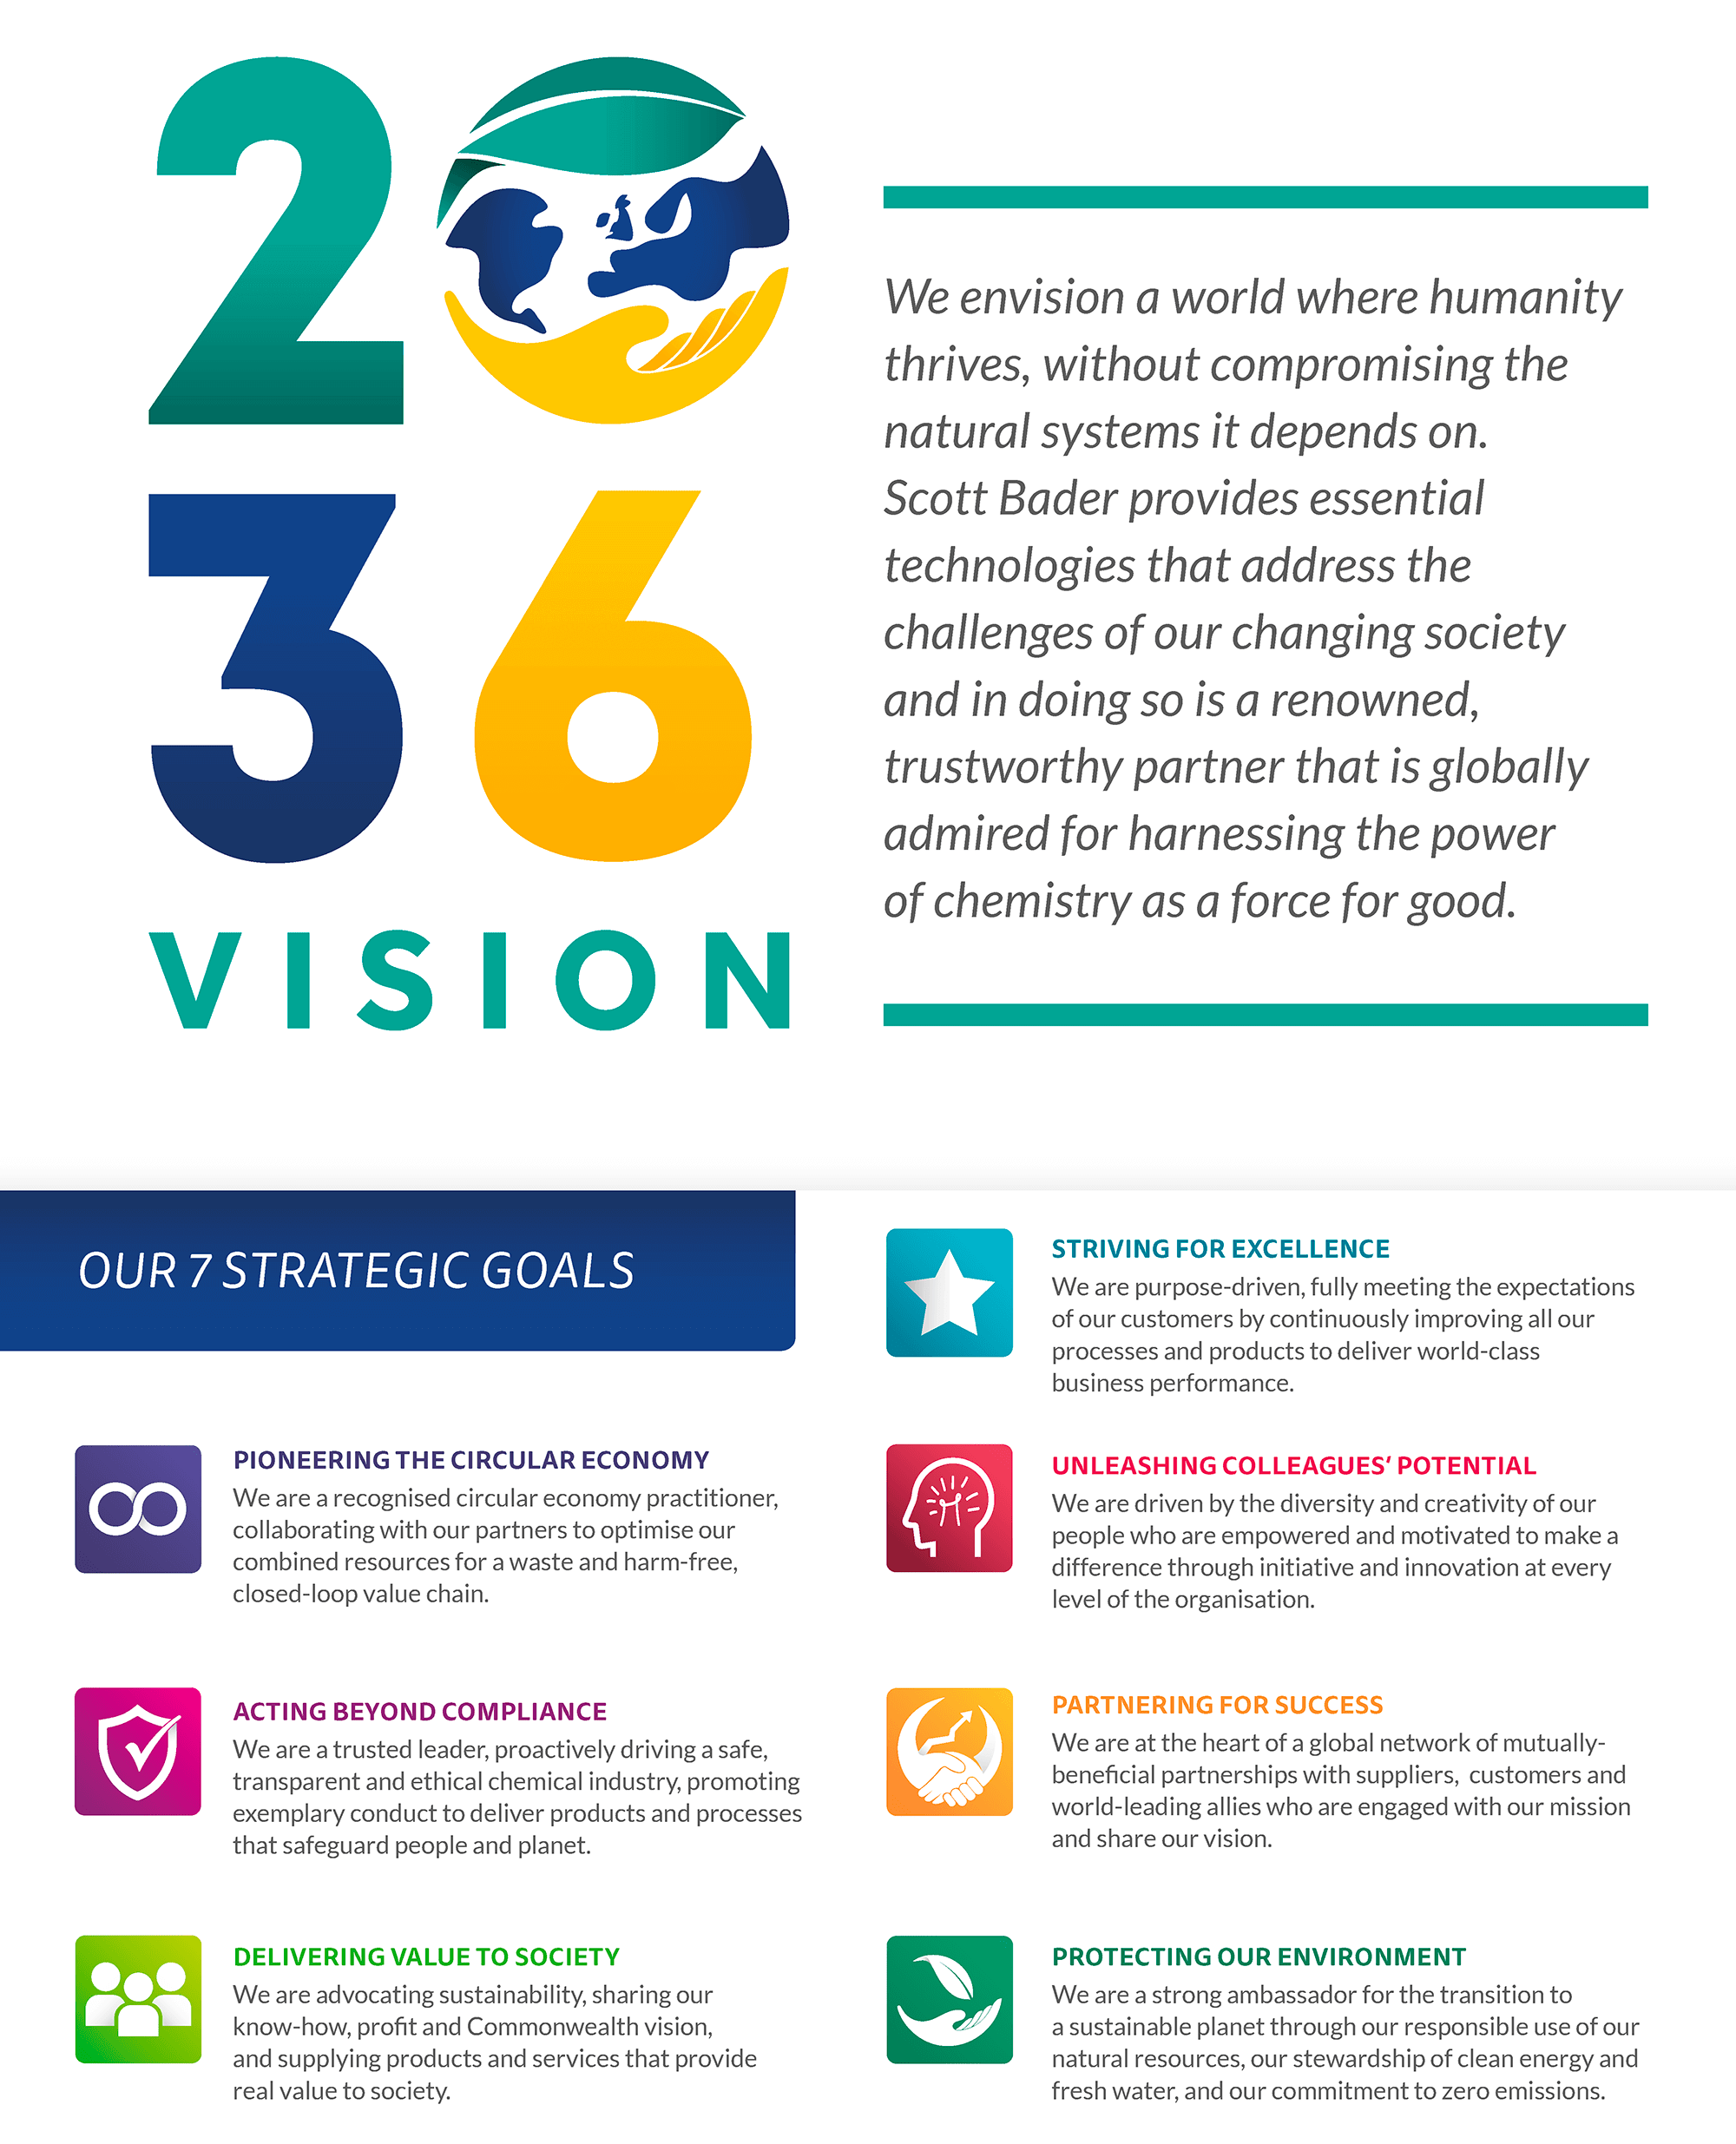 Our 2036 vision and goals